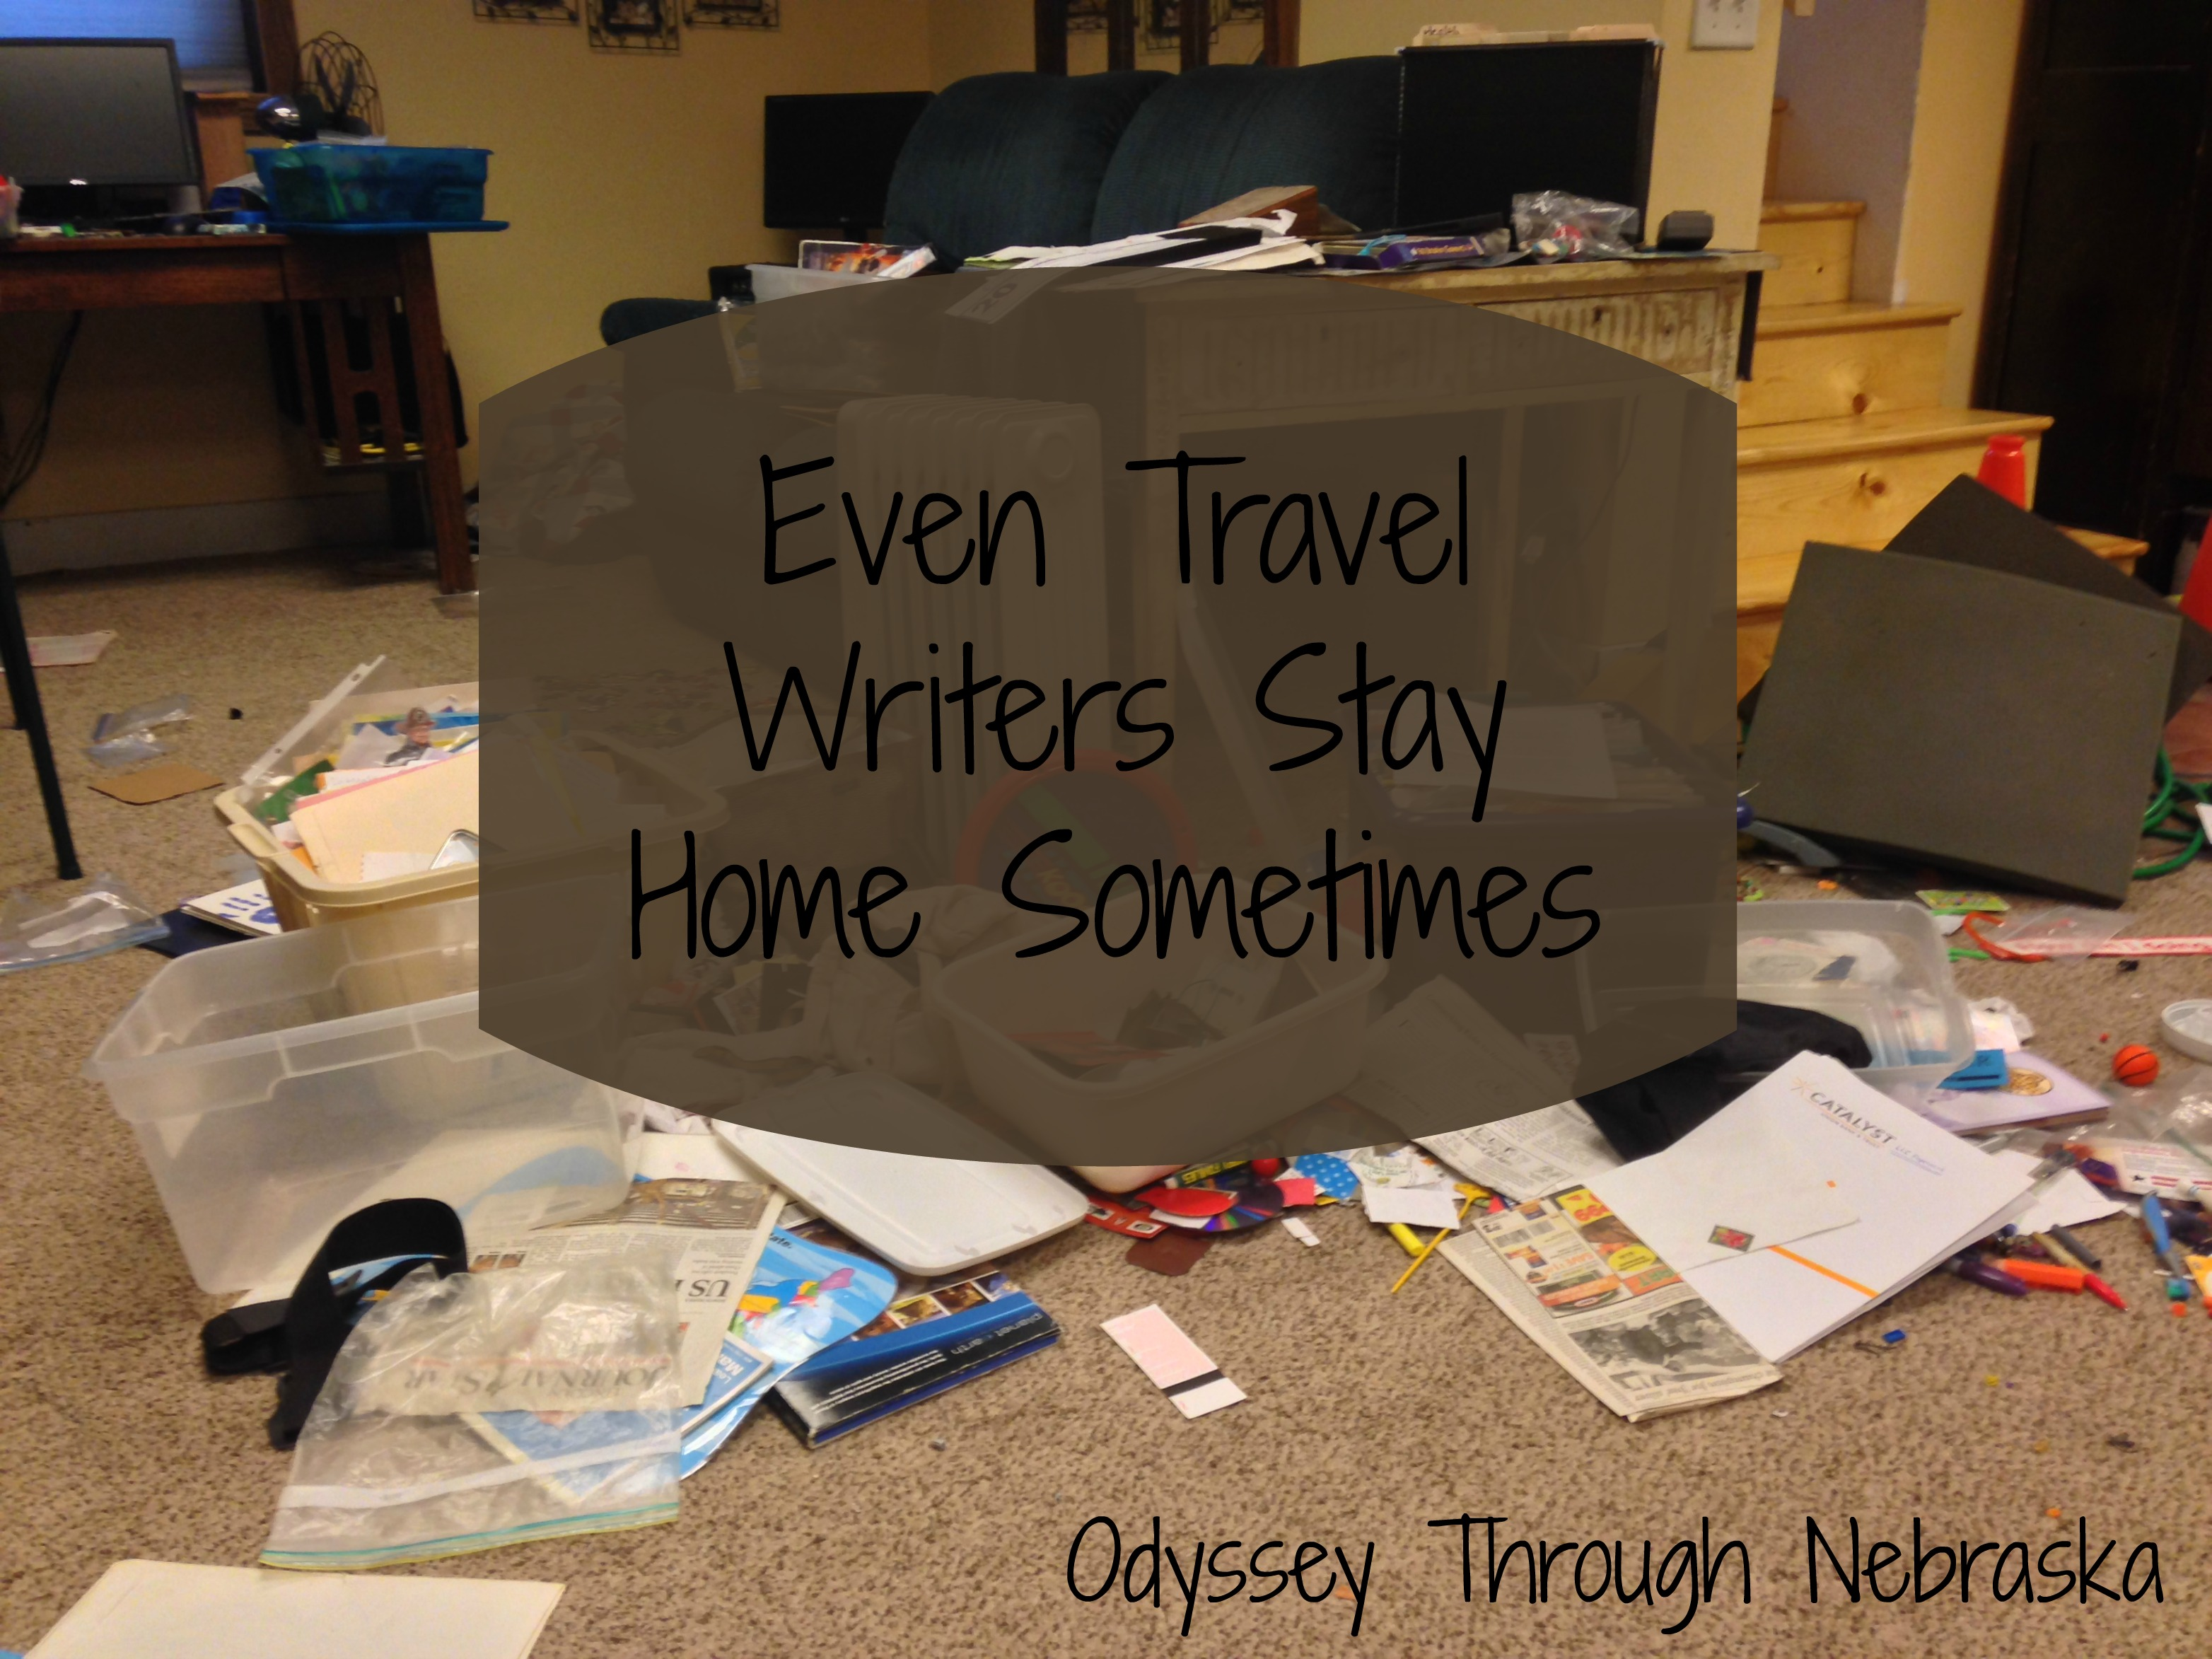 Travel Writers are not traveling all of the time - they also stay home